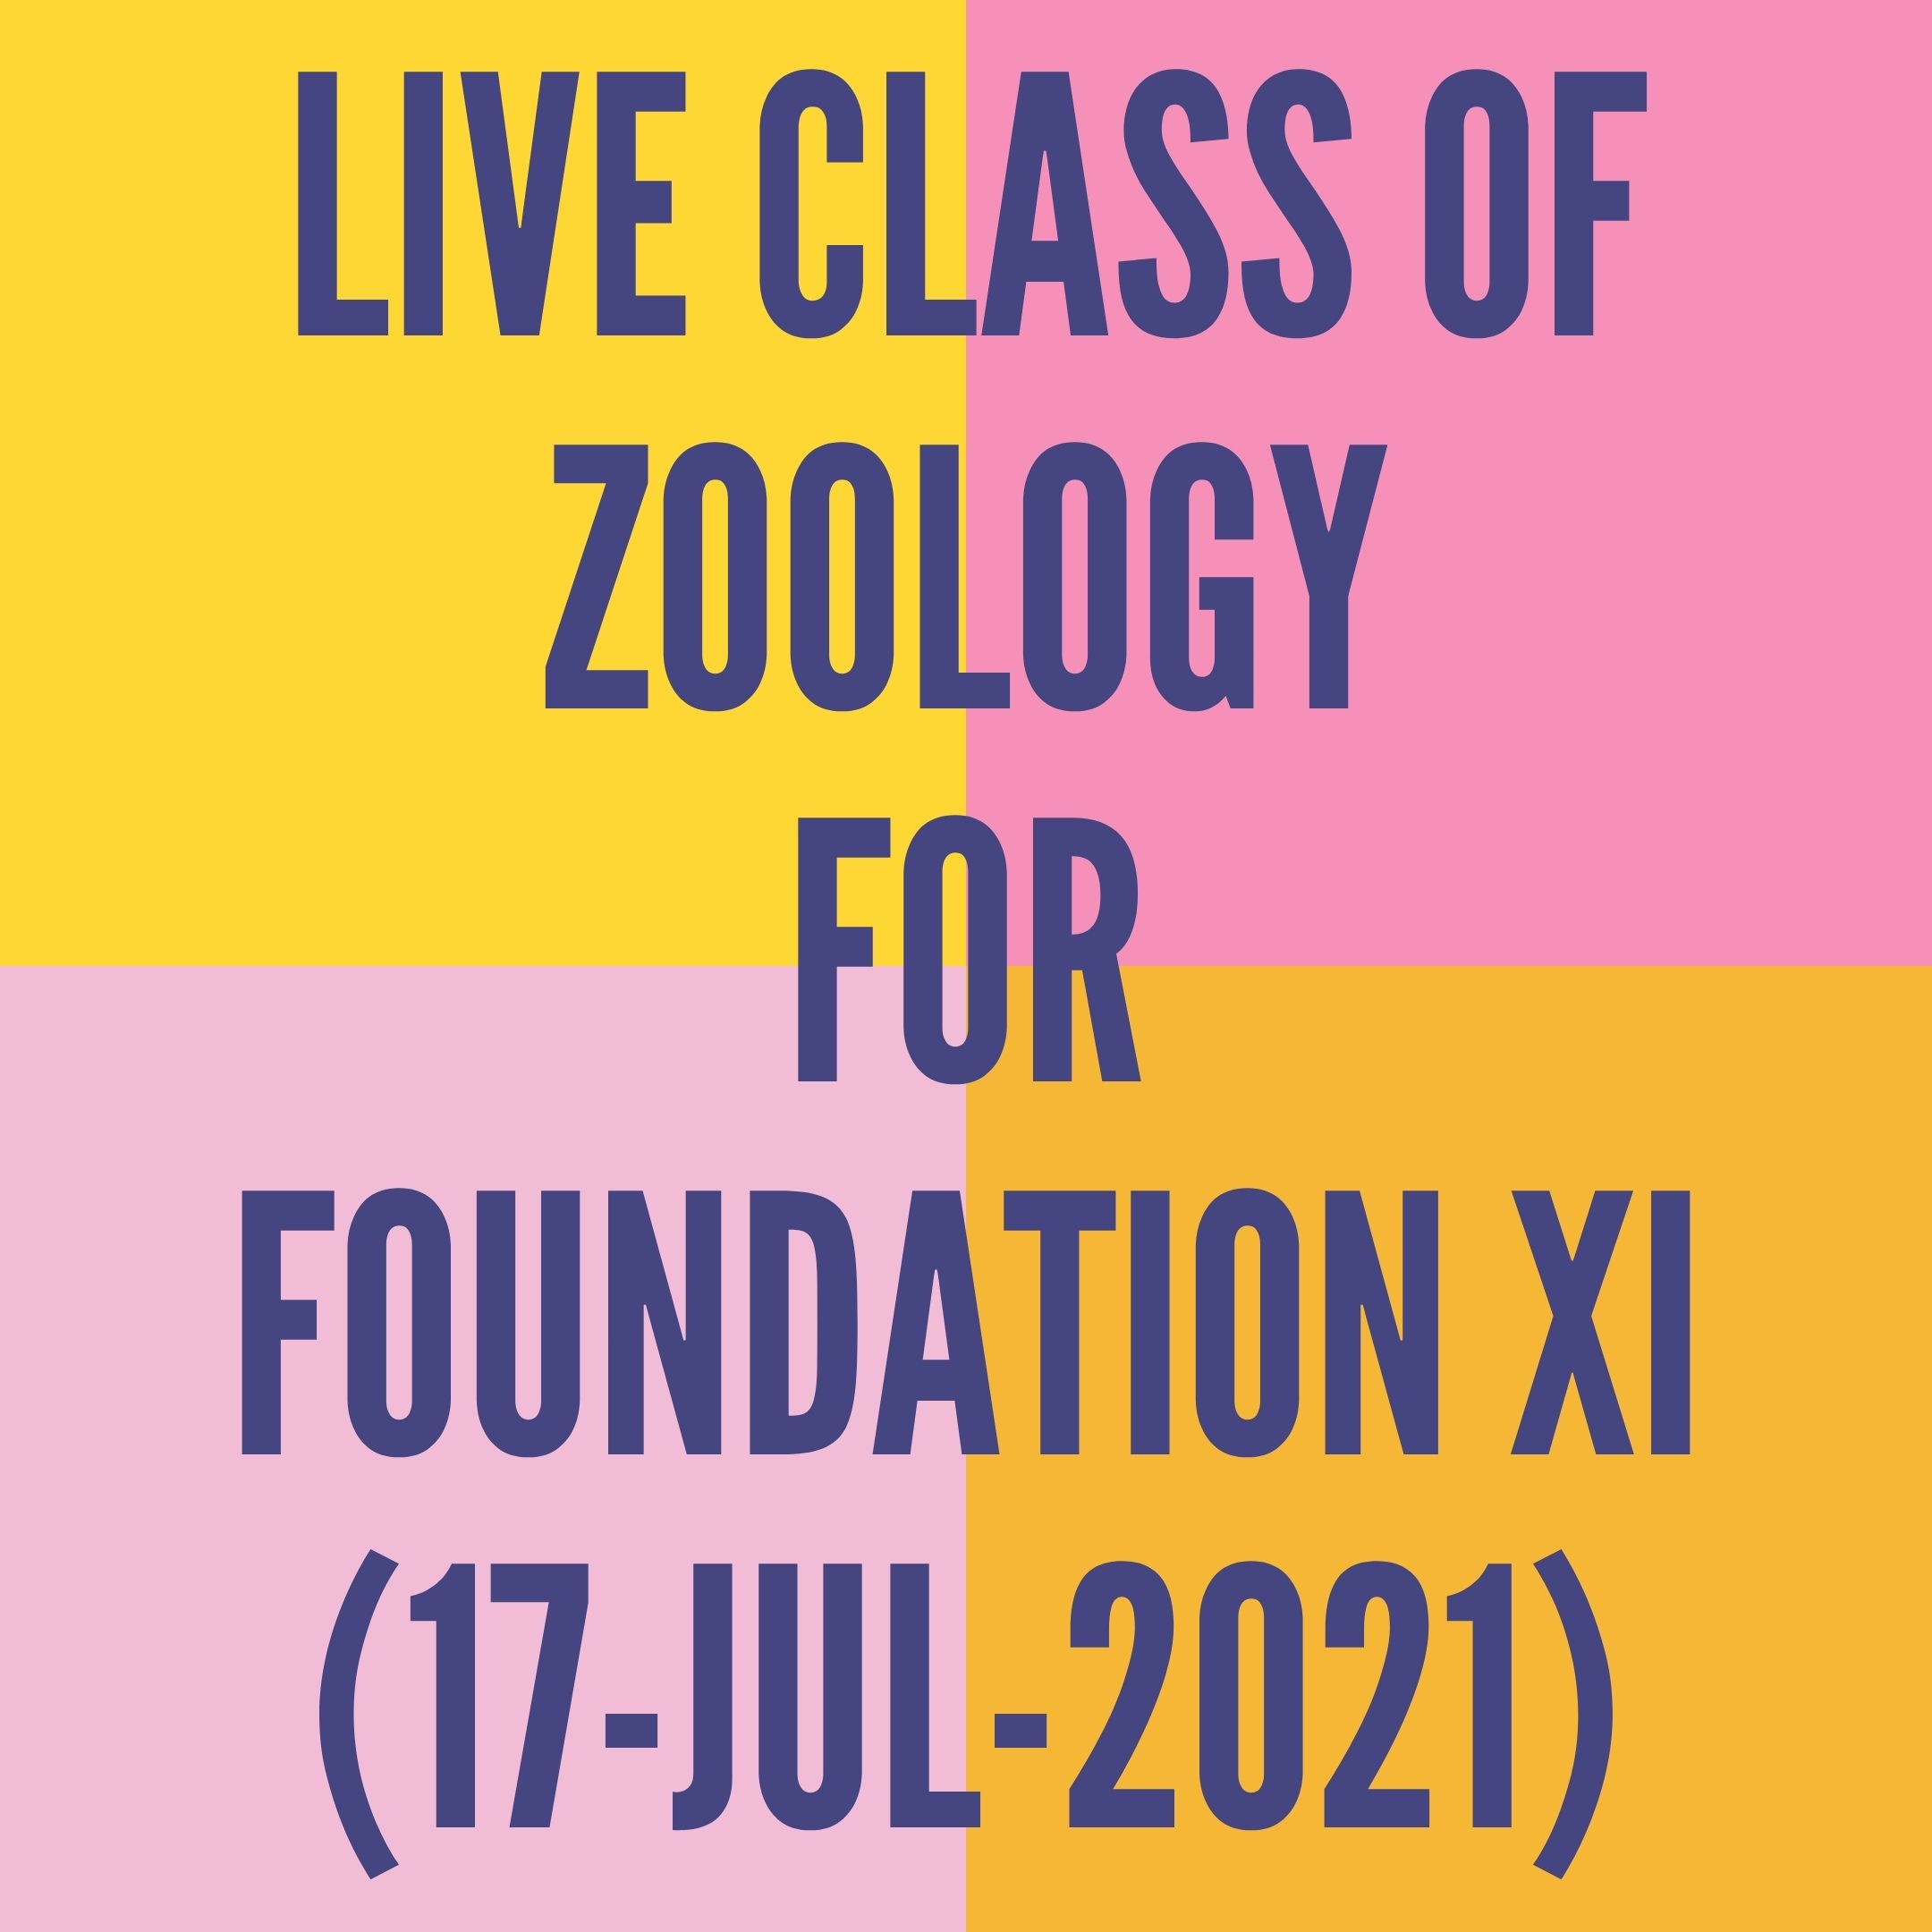 LIVE CLASS OF ZOOLOGY FOR FOUNDATION XI (17-JUL-2021) DIGESTIVE SYSTEM